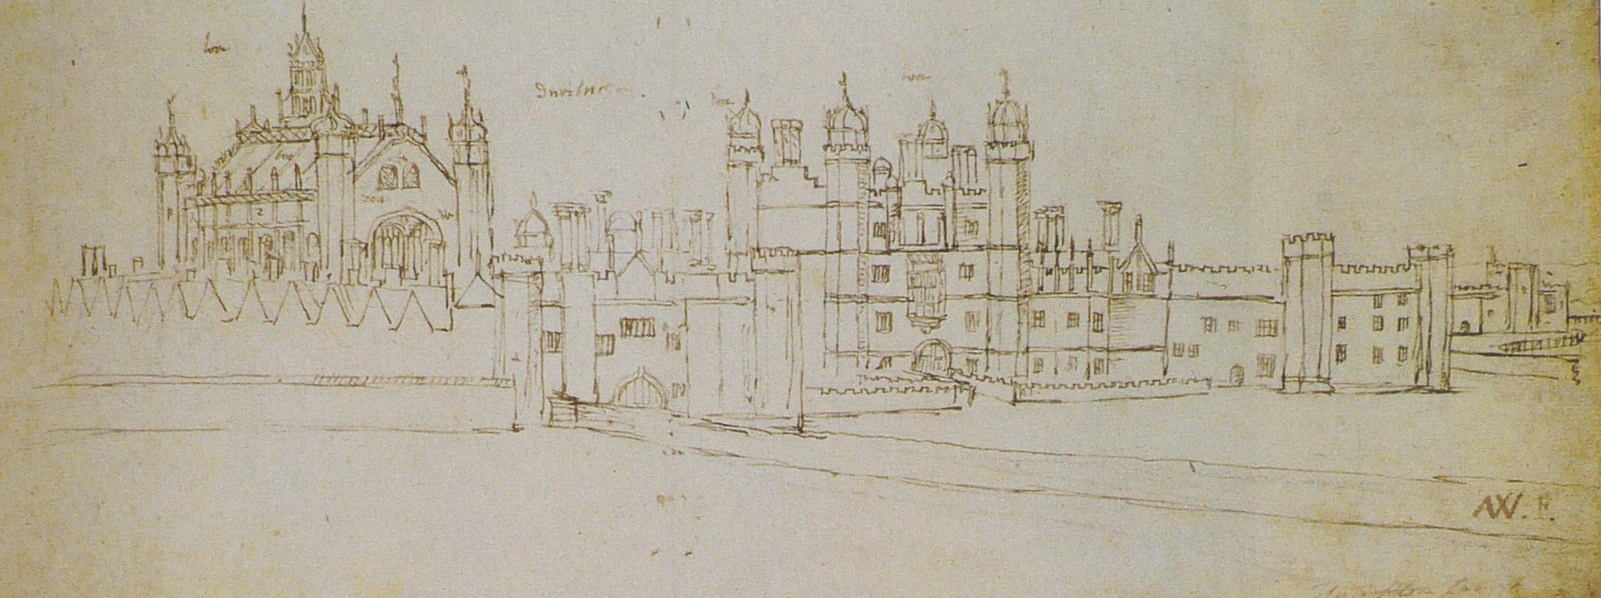 Wyngaerde Hampton Court Gatehouse 1558